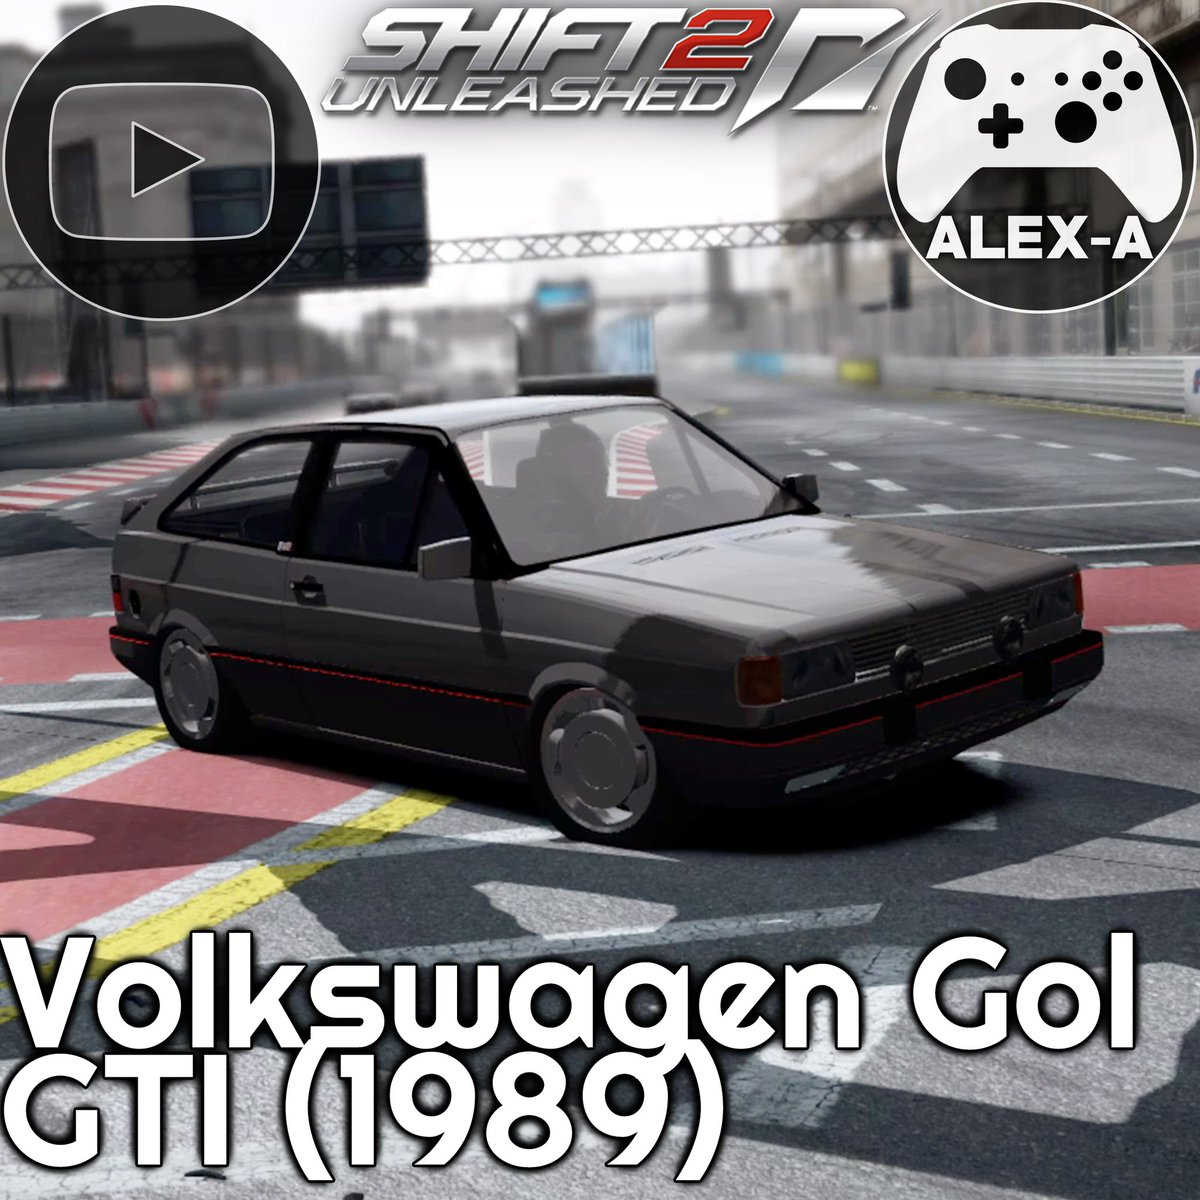 https://t.co/mQA5S2Katd Volkswagen Gol GTI (1989) - London River [NFS/Need for Speed: Shift 2 | Gameplay]  #needforspeed #shift2unleashed #a73x_a_gaming #gaming #SimRacing #needforspeedshift2 #nfs #gameplay #nfsshift2unleashed #volkswagen #vw #gol #gti #london https://t.co/77zFPoDkPV